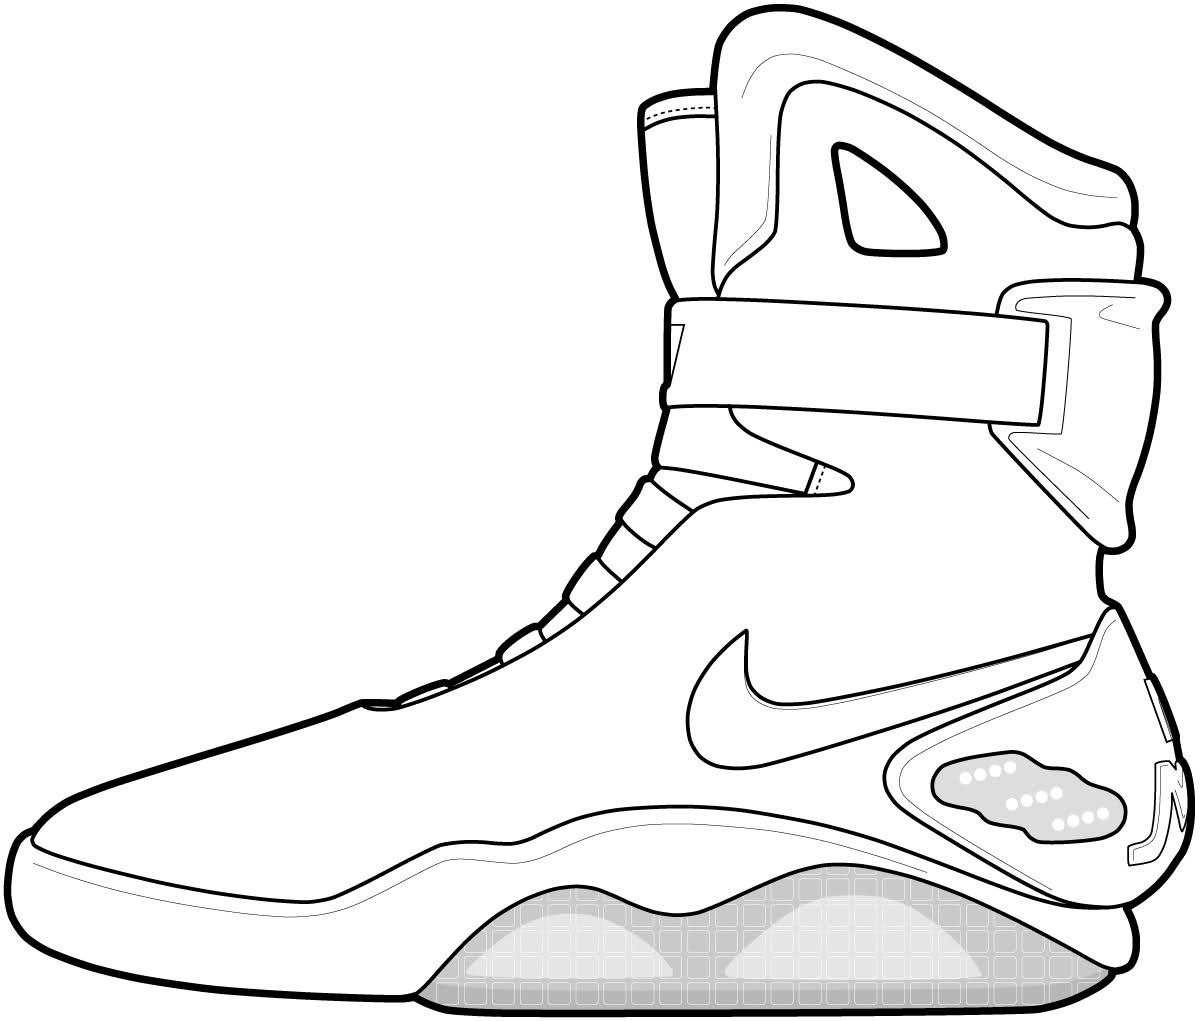 shoes coloring page basketball shoe coloring pages download and print for free page shoes coloring